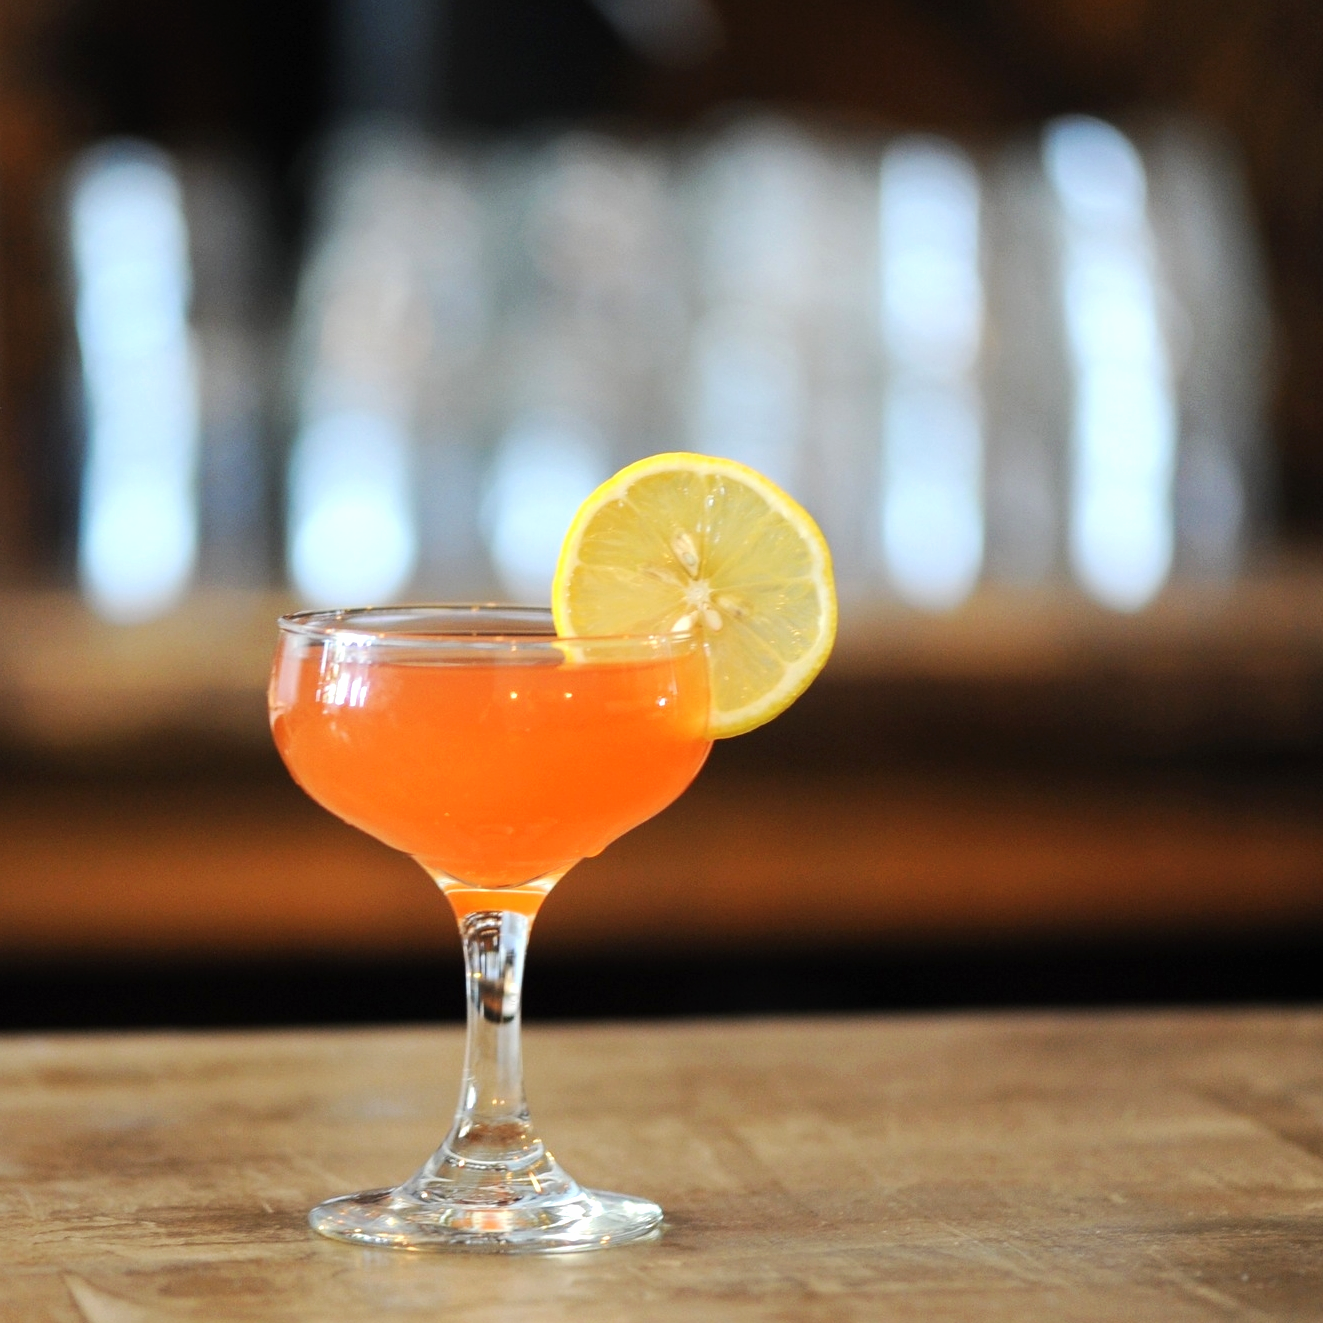 the-cocktail-experiment-syrups-orange-chartreuse-daisy